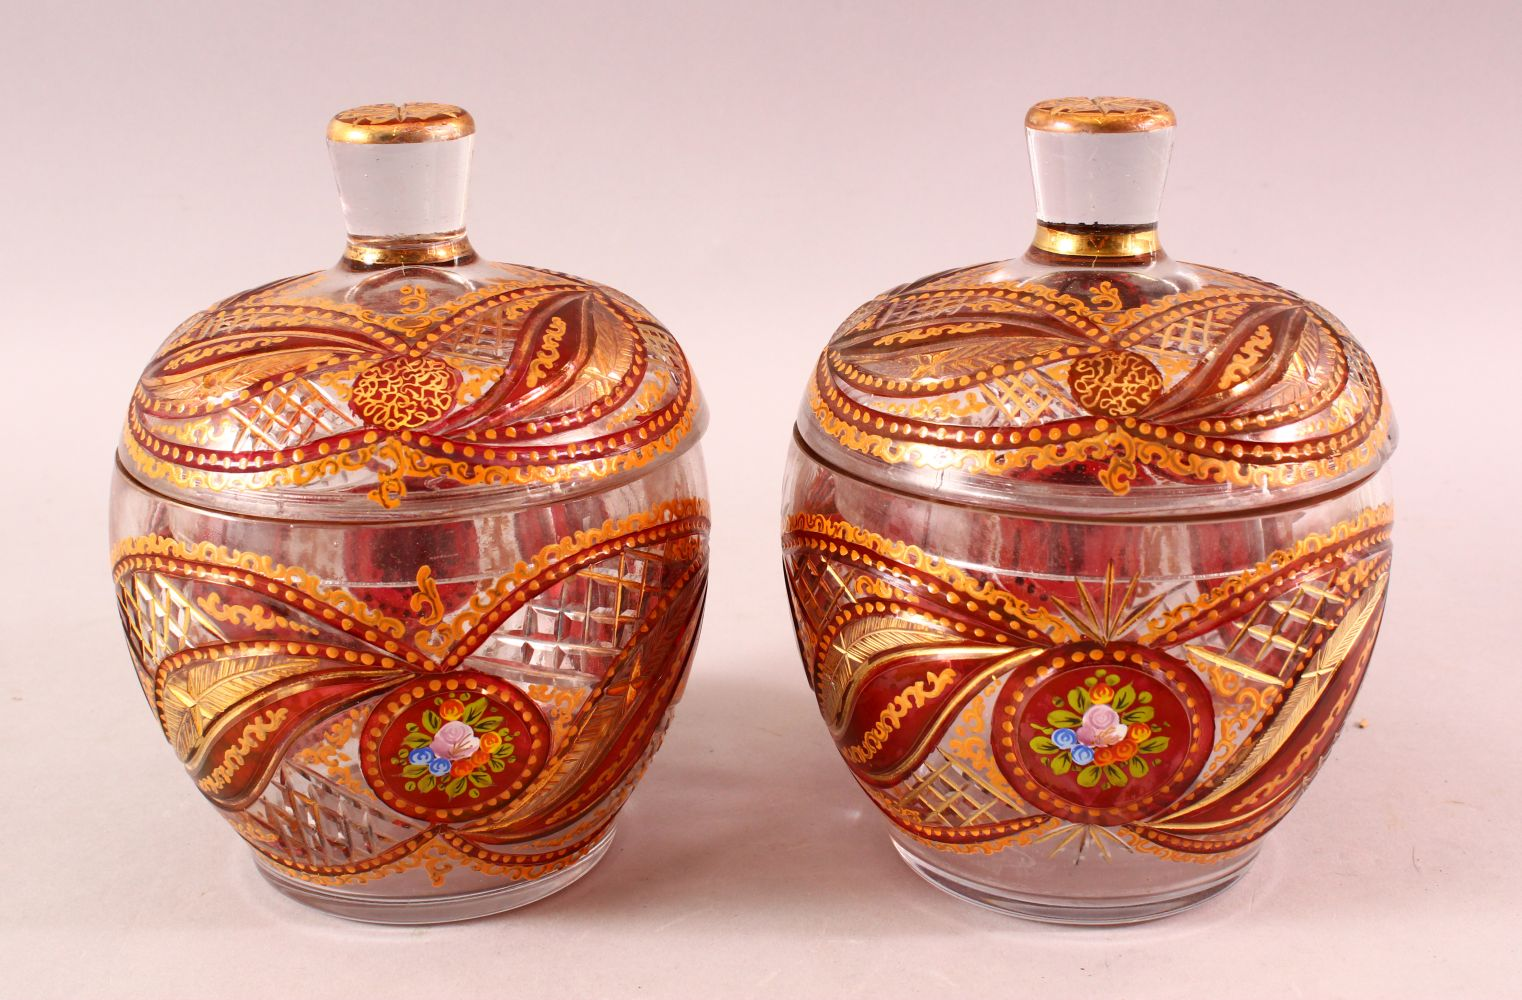 A PAIR OF BOHEMIAN RED ENAMELLED GLASS JARS, each with enamel and gilt work, 20cm each